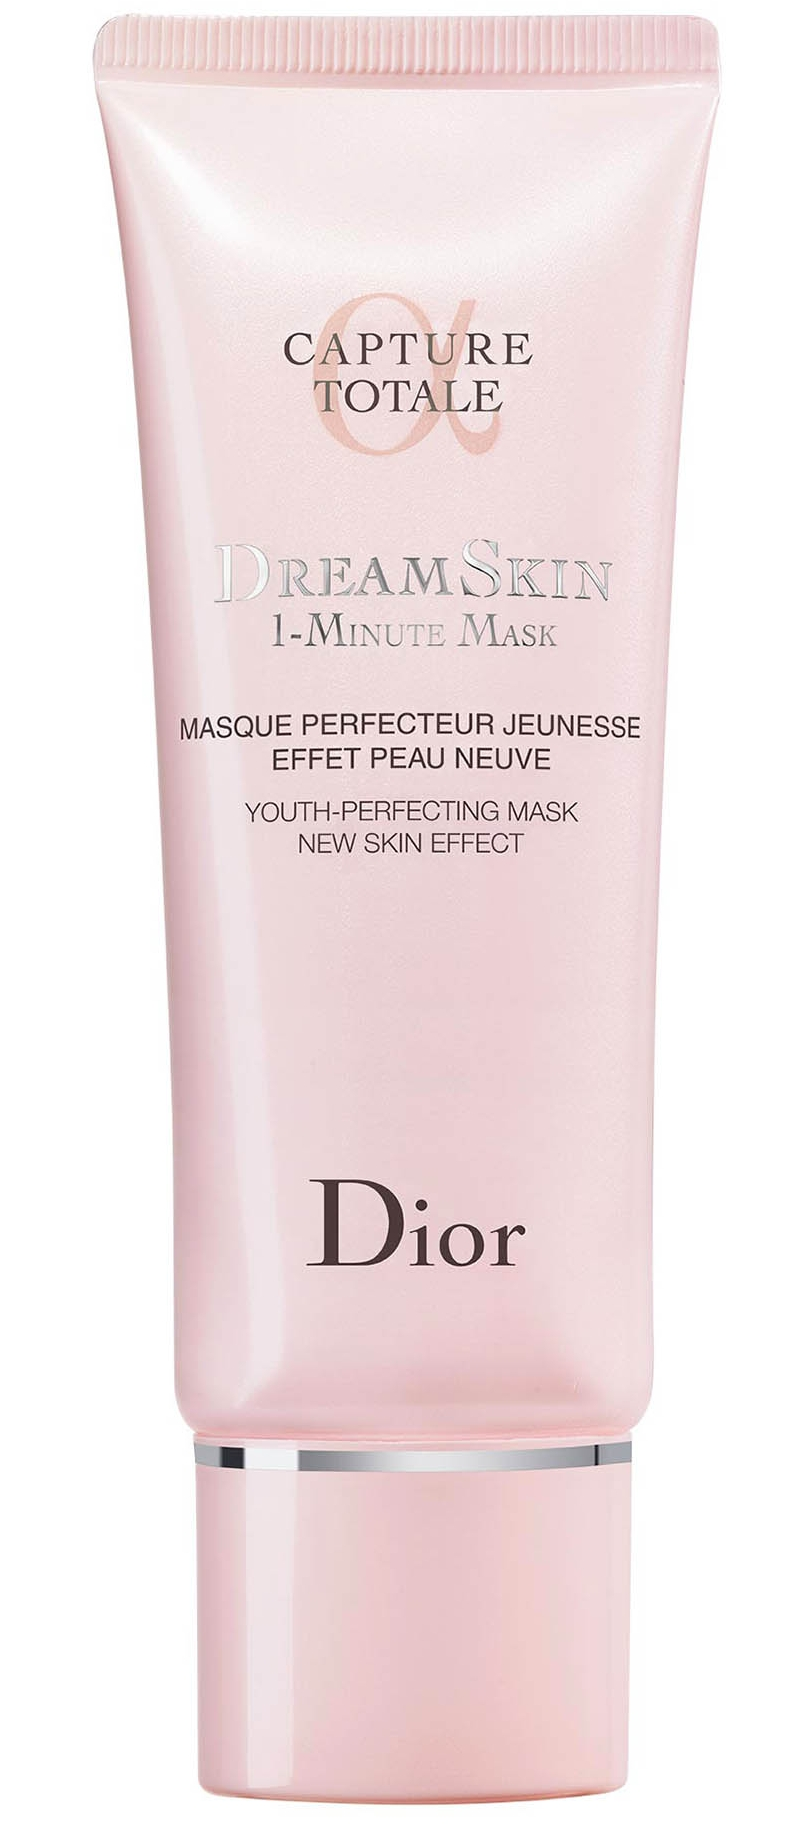 Dreamskin 1-Minute Mask by Dior